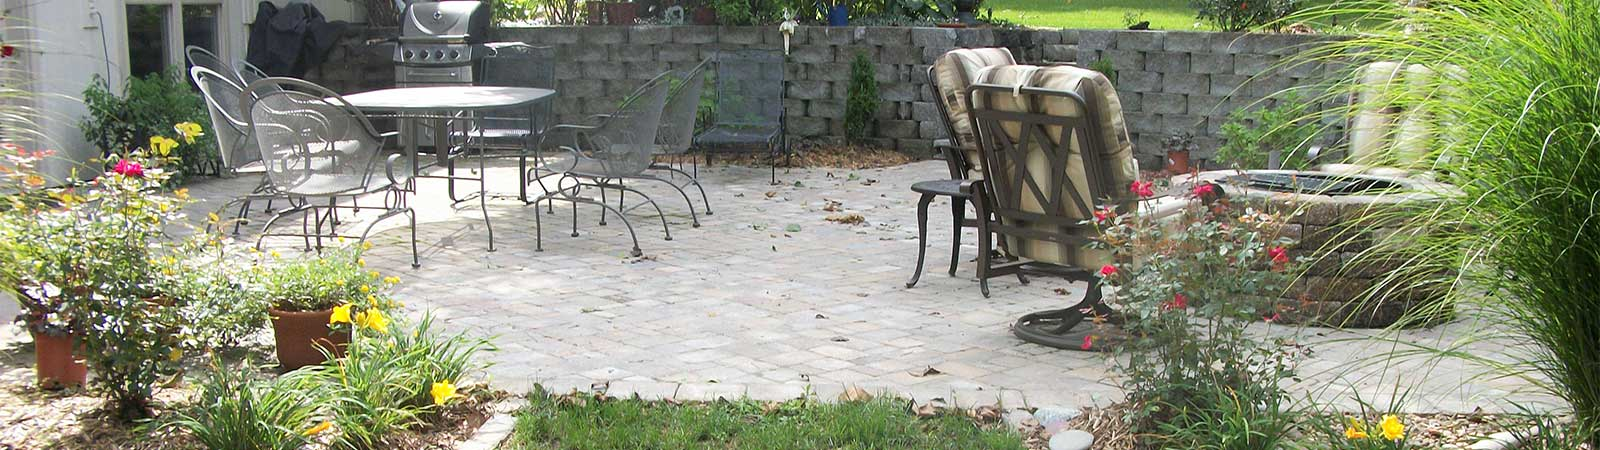 patio made of paving stones with chairs